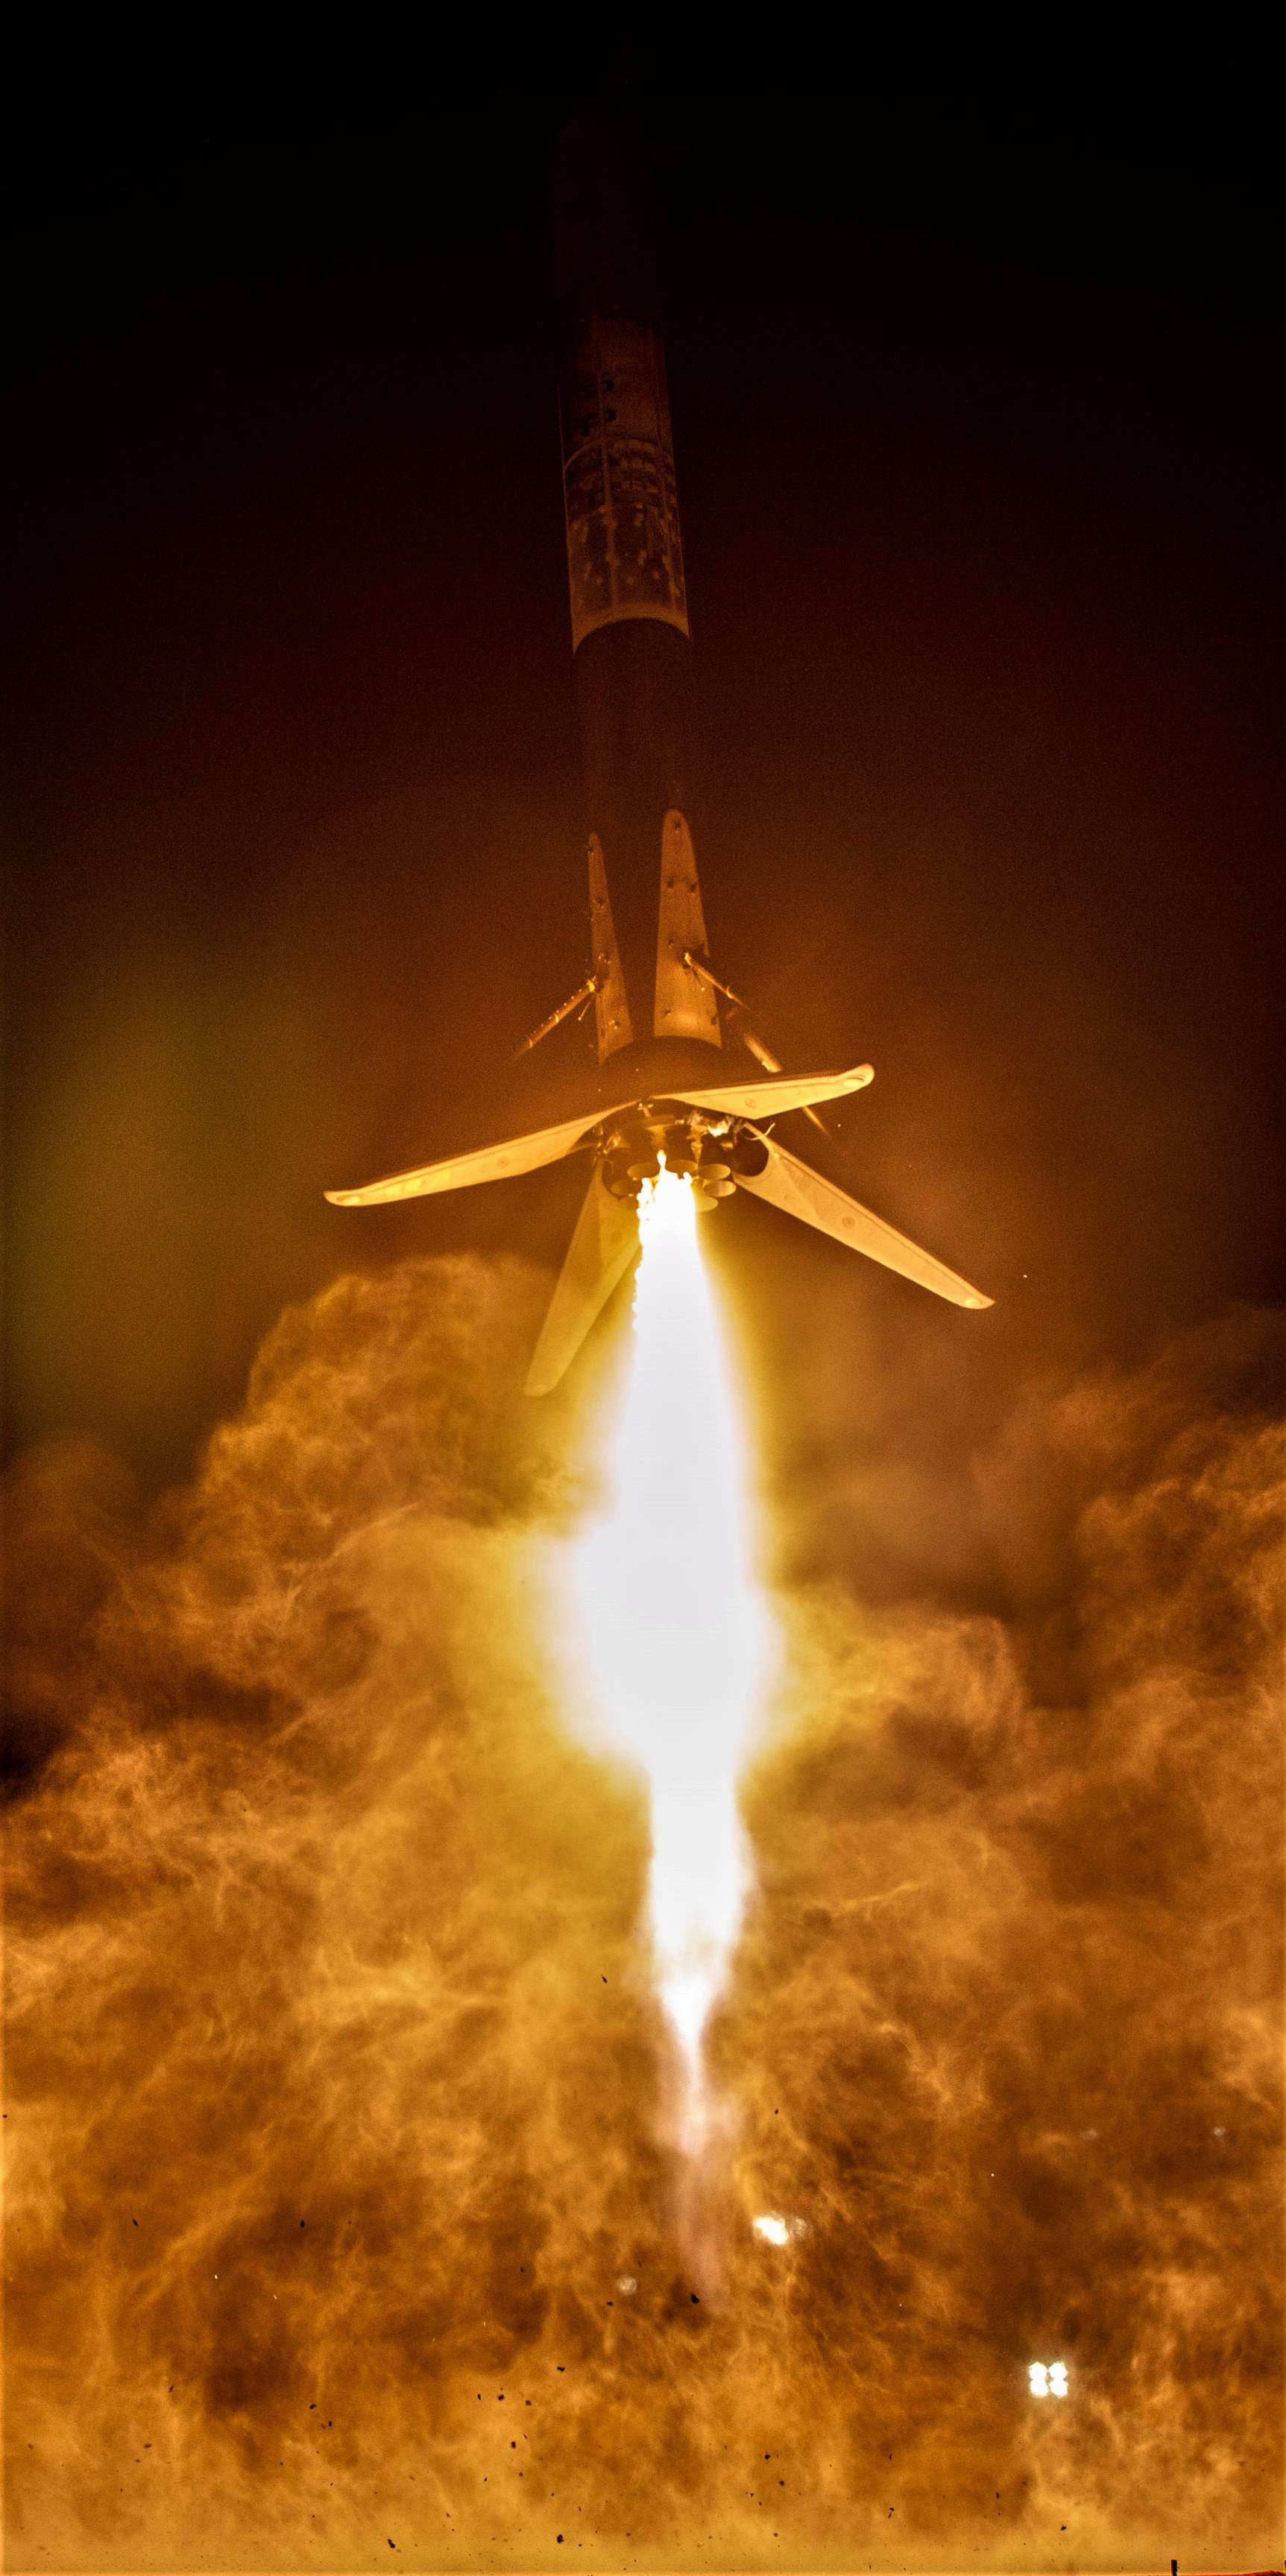 SAOCOM 1A B1048 landing (SpaceX) 1 edit(c)